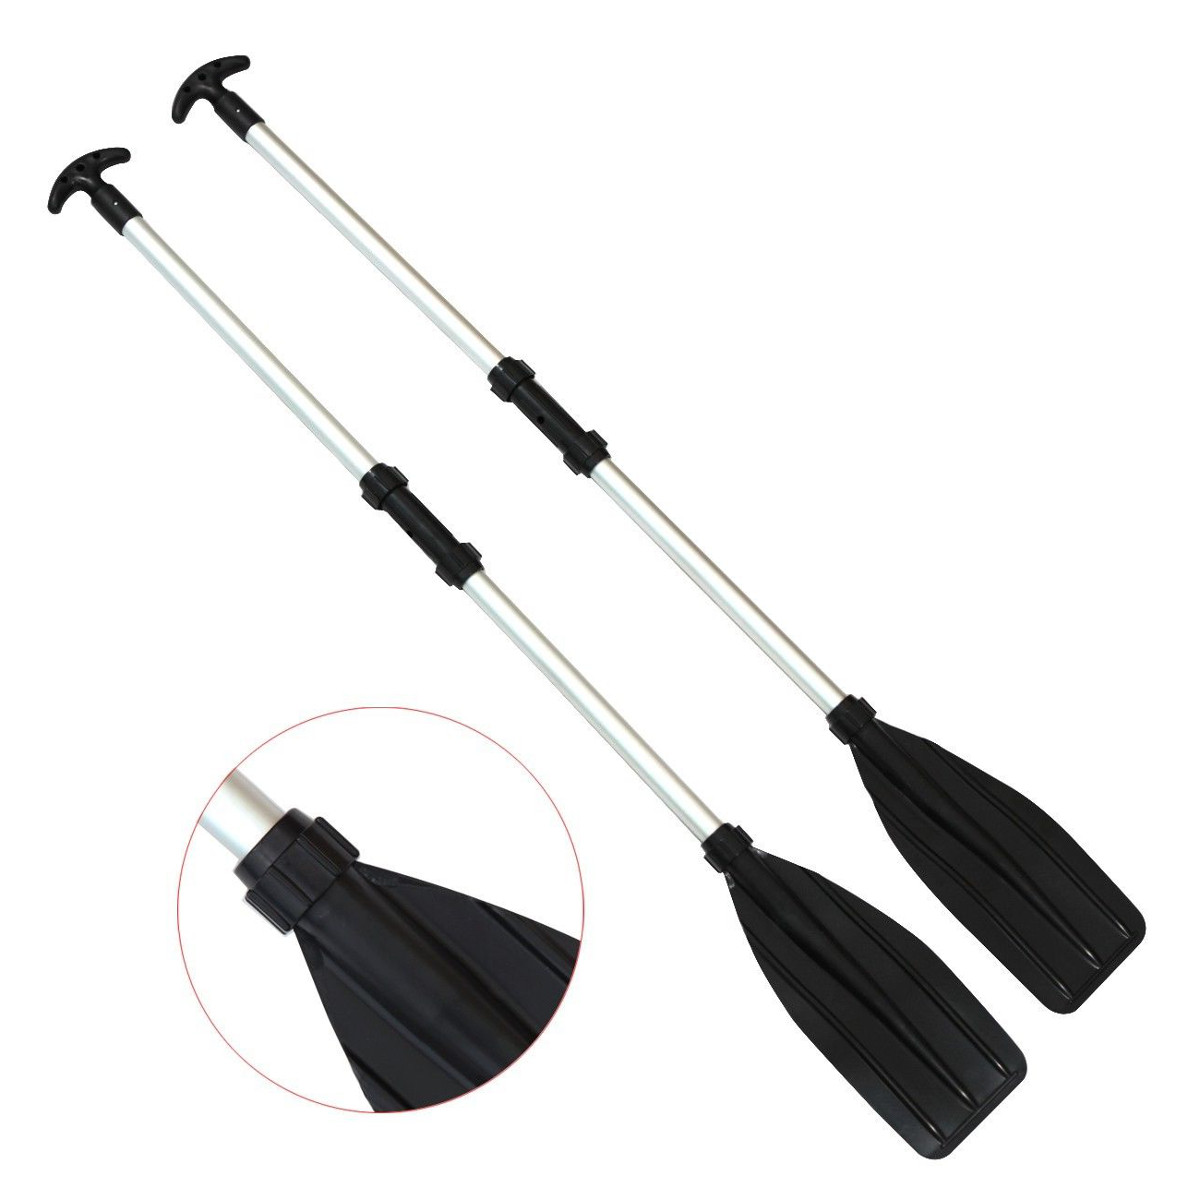 Detachable  Assemble Strengthened Aluminium Boat Oars Paddle Long Oar For PVC Inflatable Boat Fishing  Kayak Canoe Paddle Pad